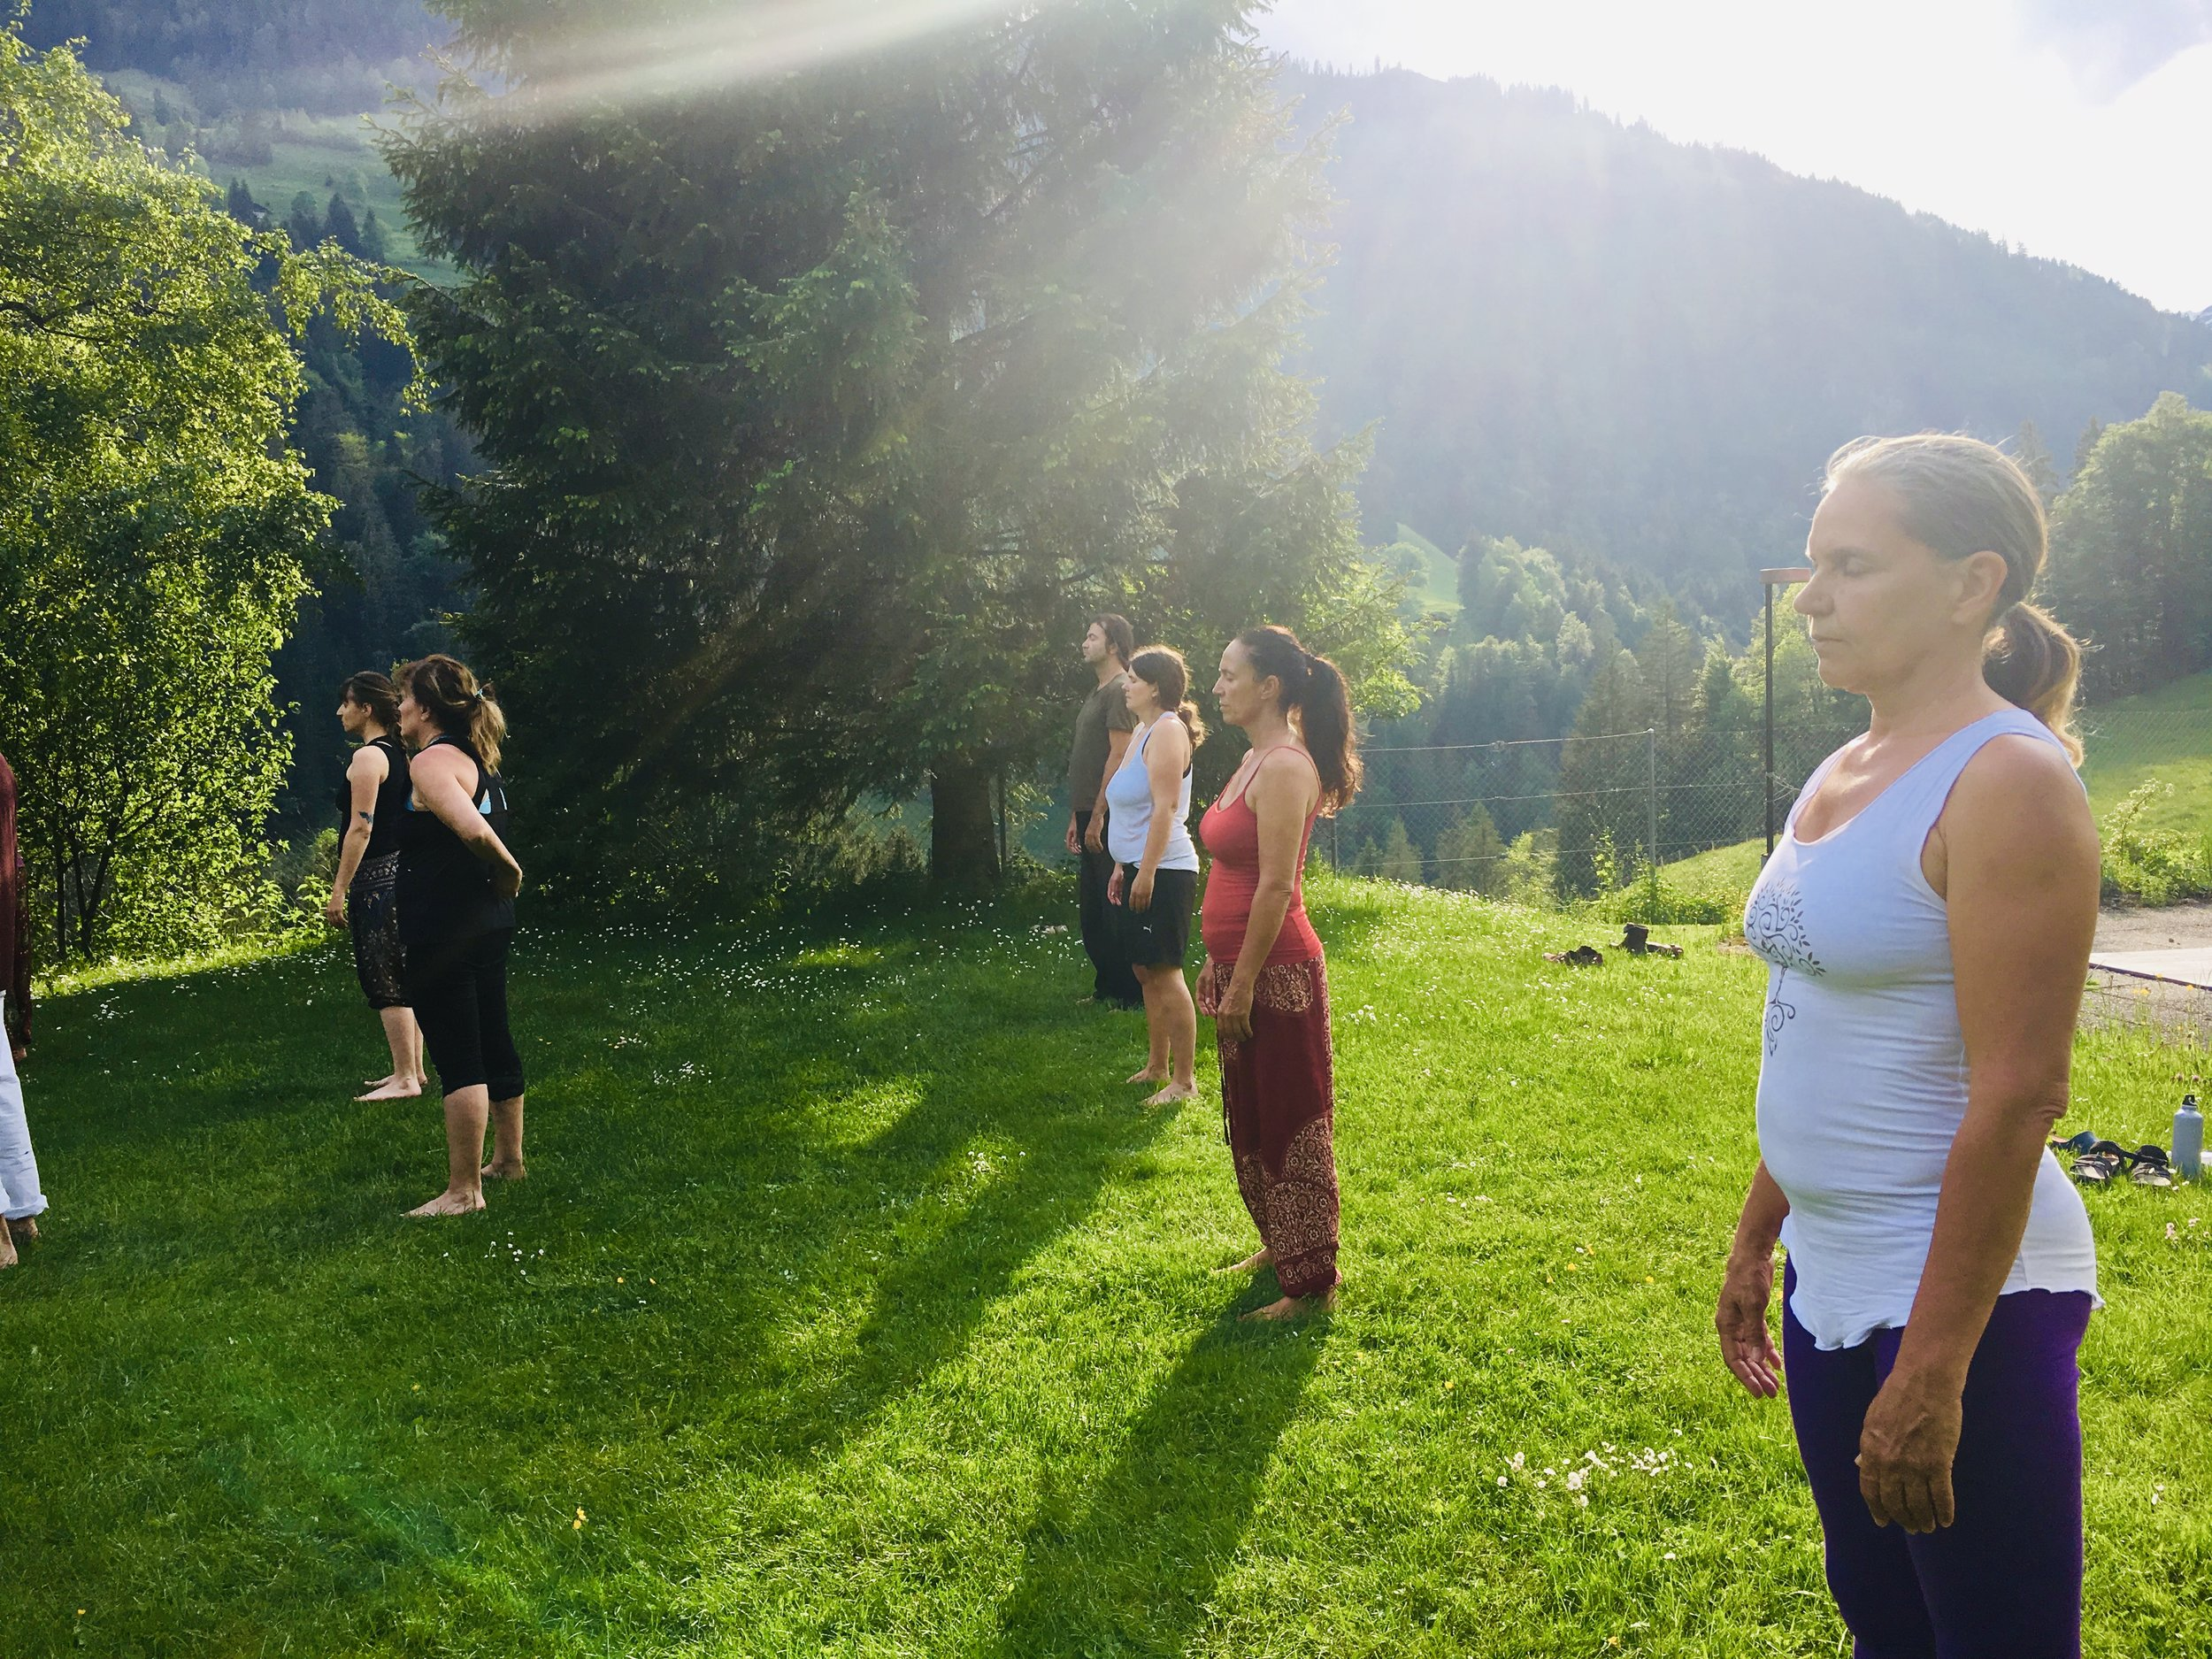 Timeless days of Discovery, Movement Meditation, Quantum Expansion & Ancient Bodywork with Jody Mountain.